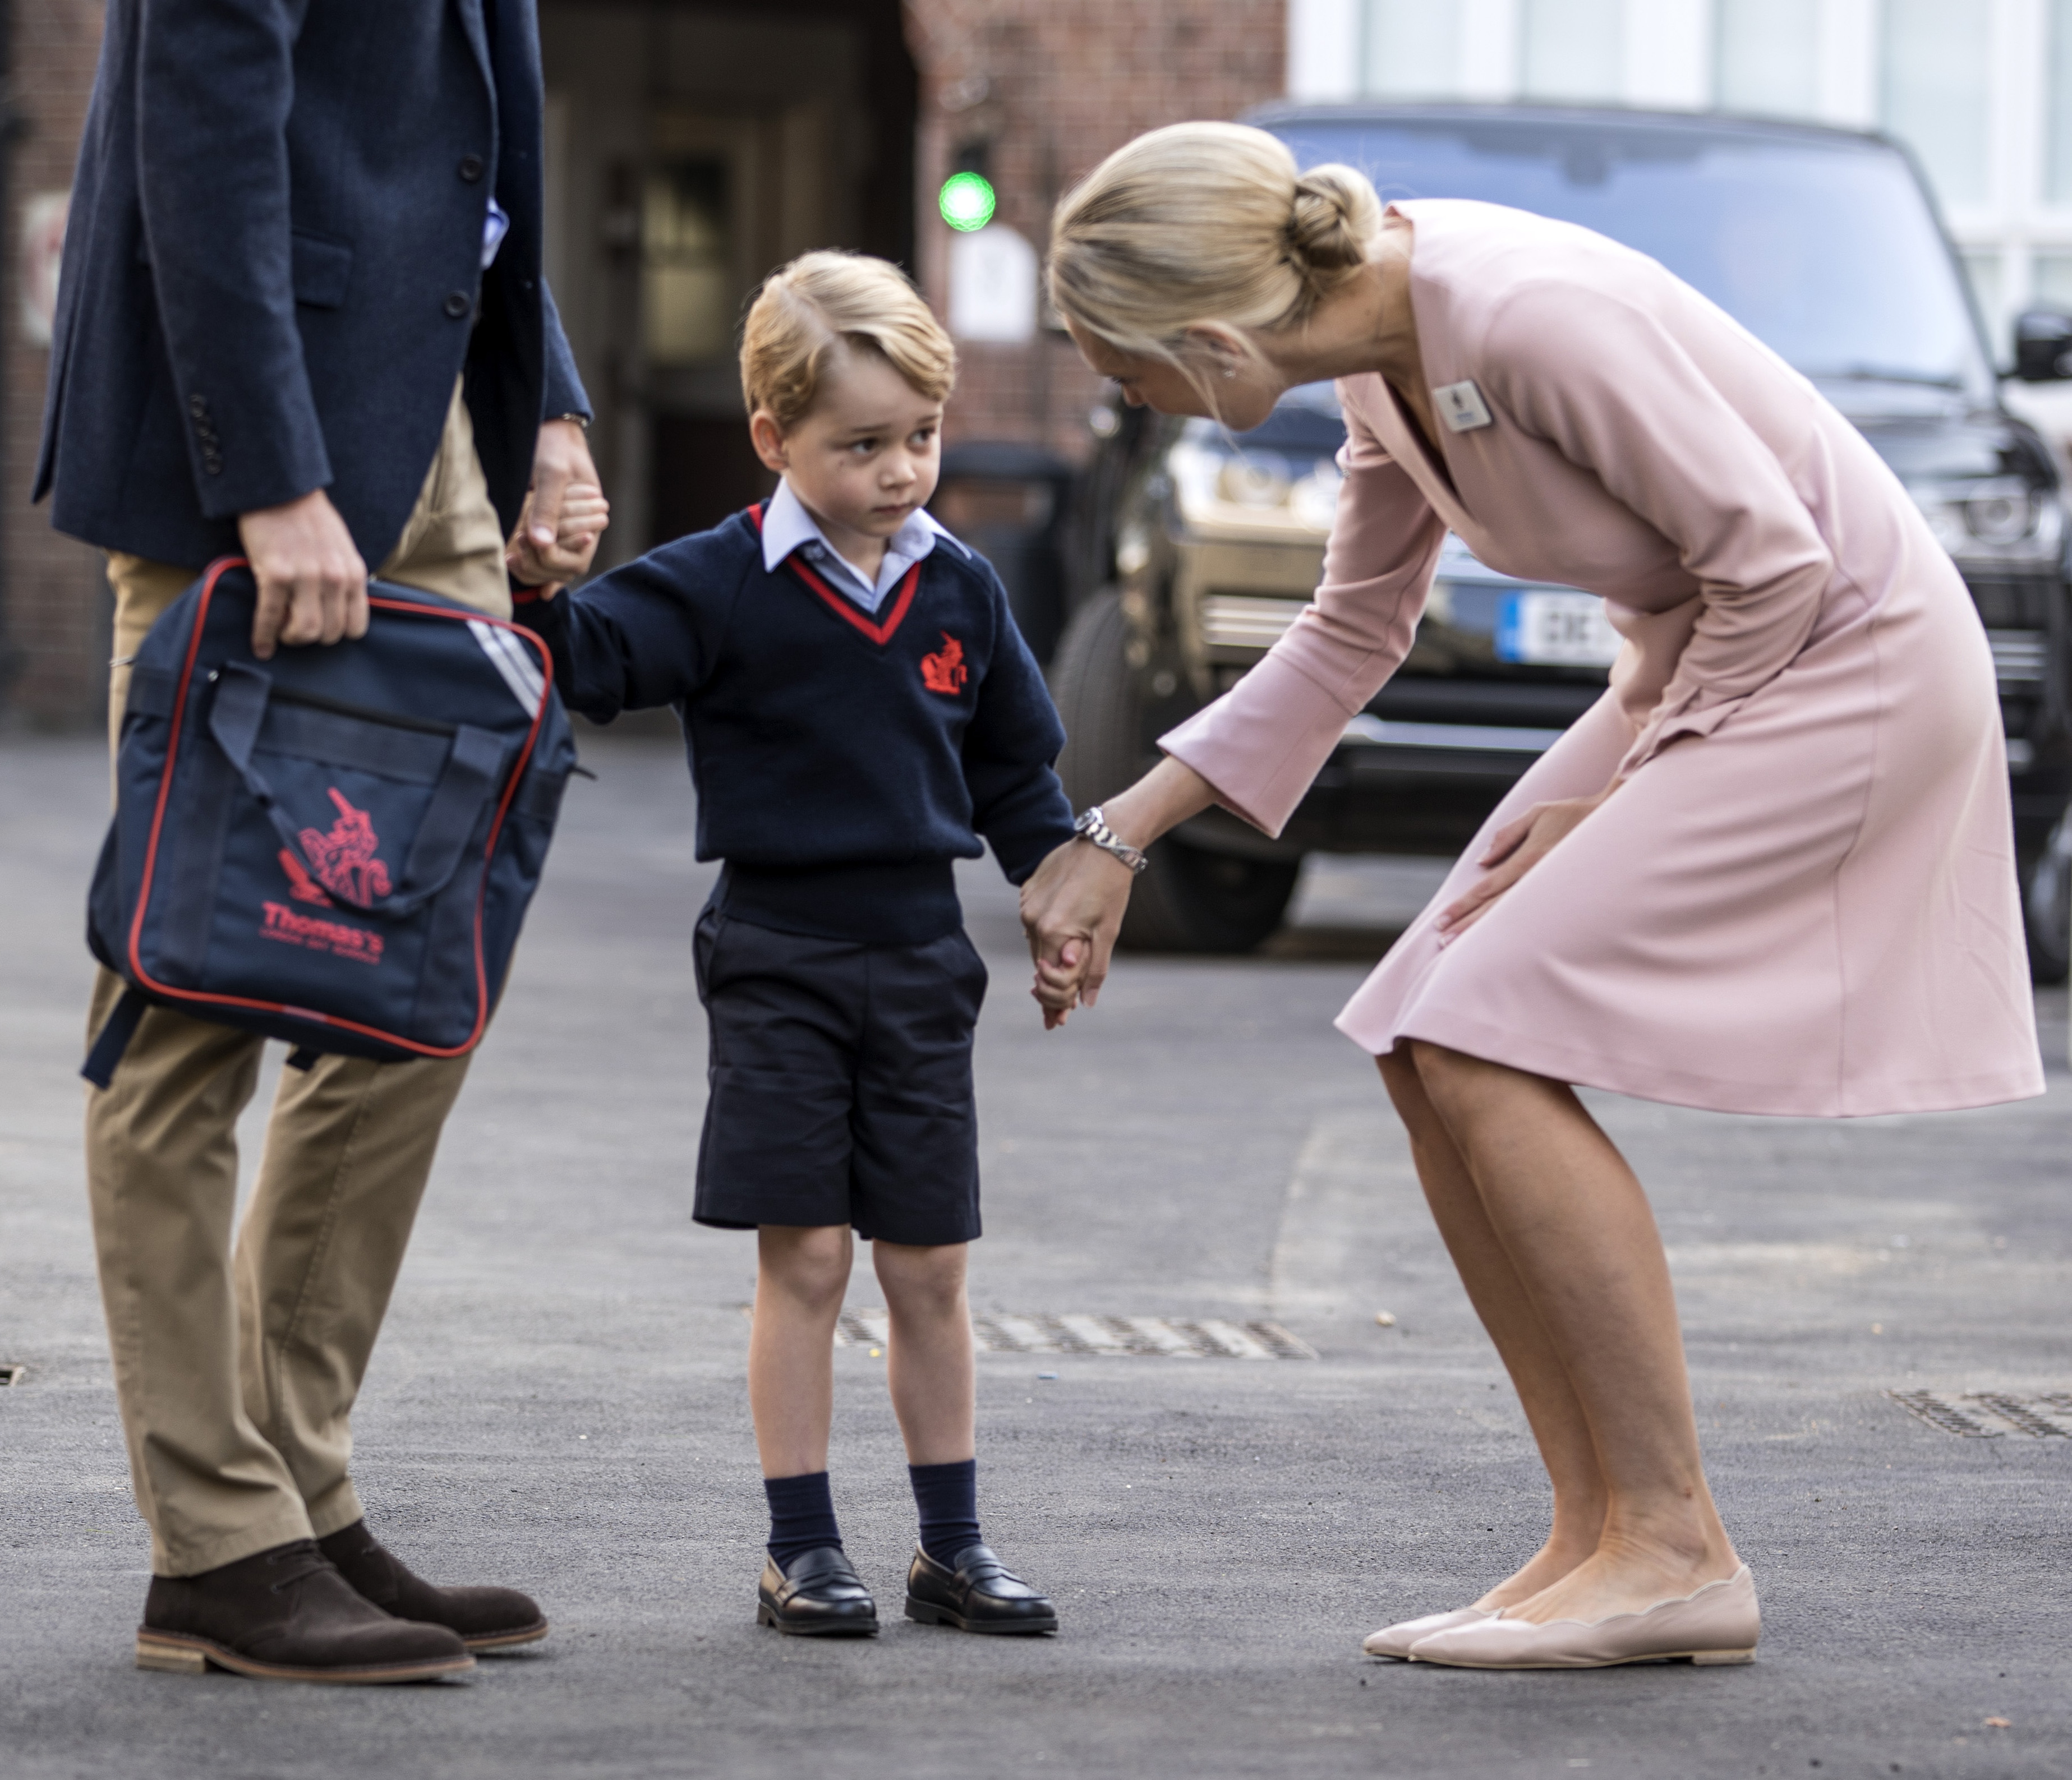 Prince George of Cambridge arrives for his first day of school with his father Prince William, Duke of Cambridge as they are met Head of the lower school Helen Haslem at Thomas's Battersea on September 7, 2017 in London, England. (Getty Images)